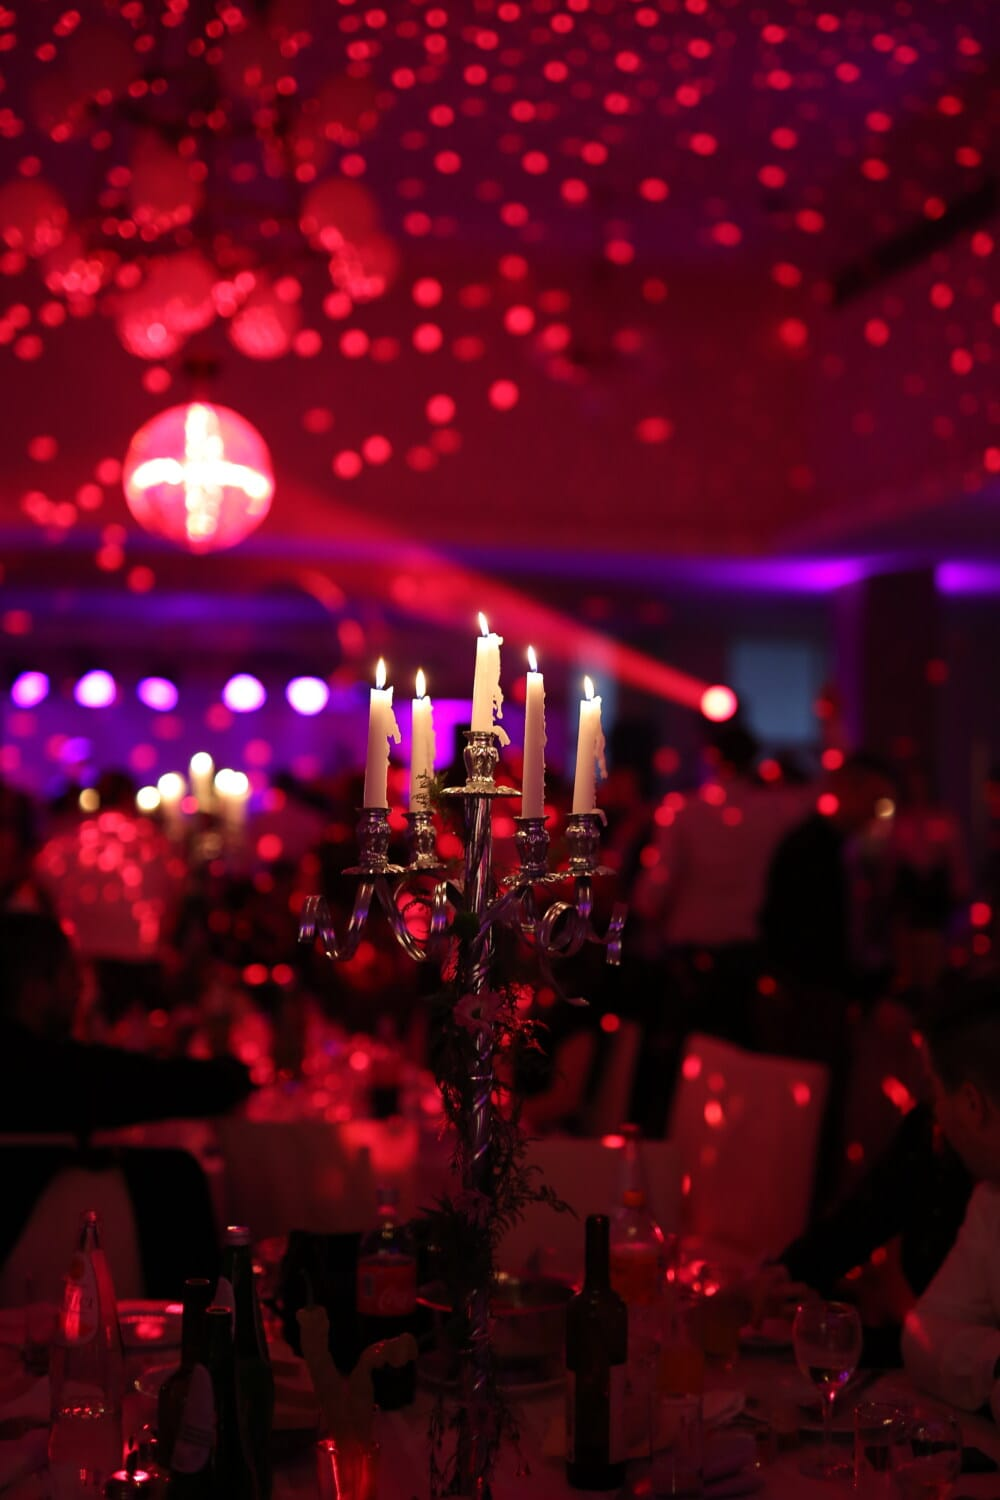 spectacular, new year, nightclub, atmosphere, nightlife, candles, restaurant, candlelight, hotel, christmas